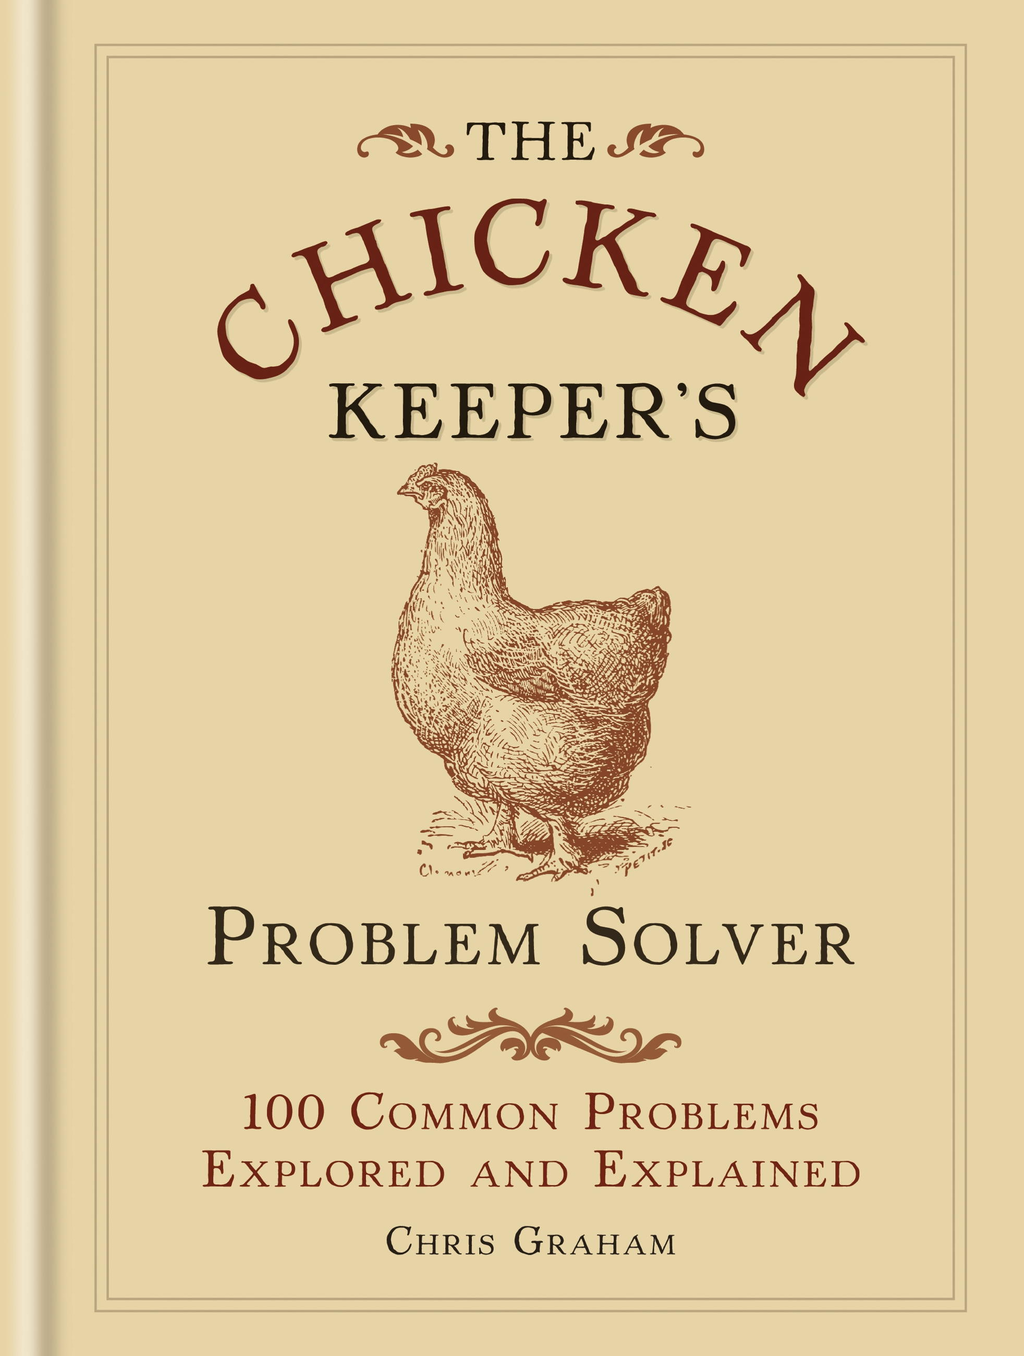 The Chicken Keeper's Problem Solver 100 Common Problems Explored and Explained